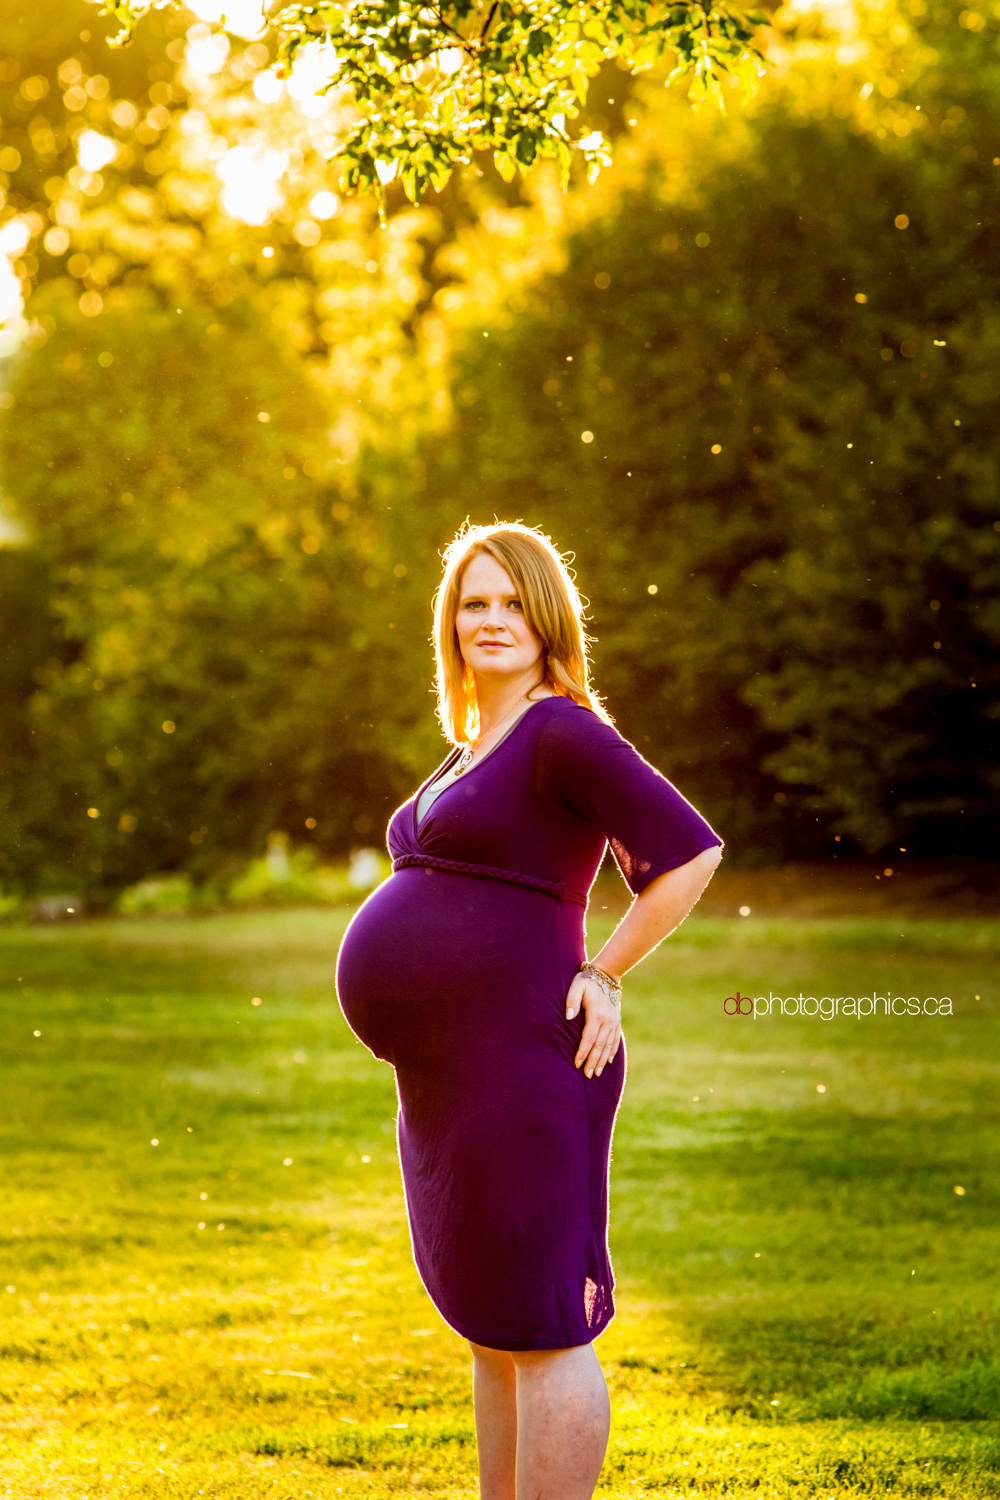 Elisabeth & Trent - Maternity Session - 20140707 - 0056.jpg